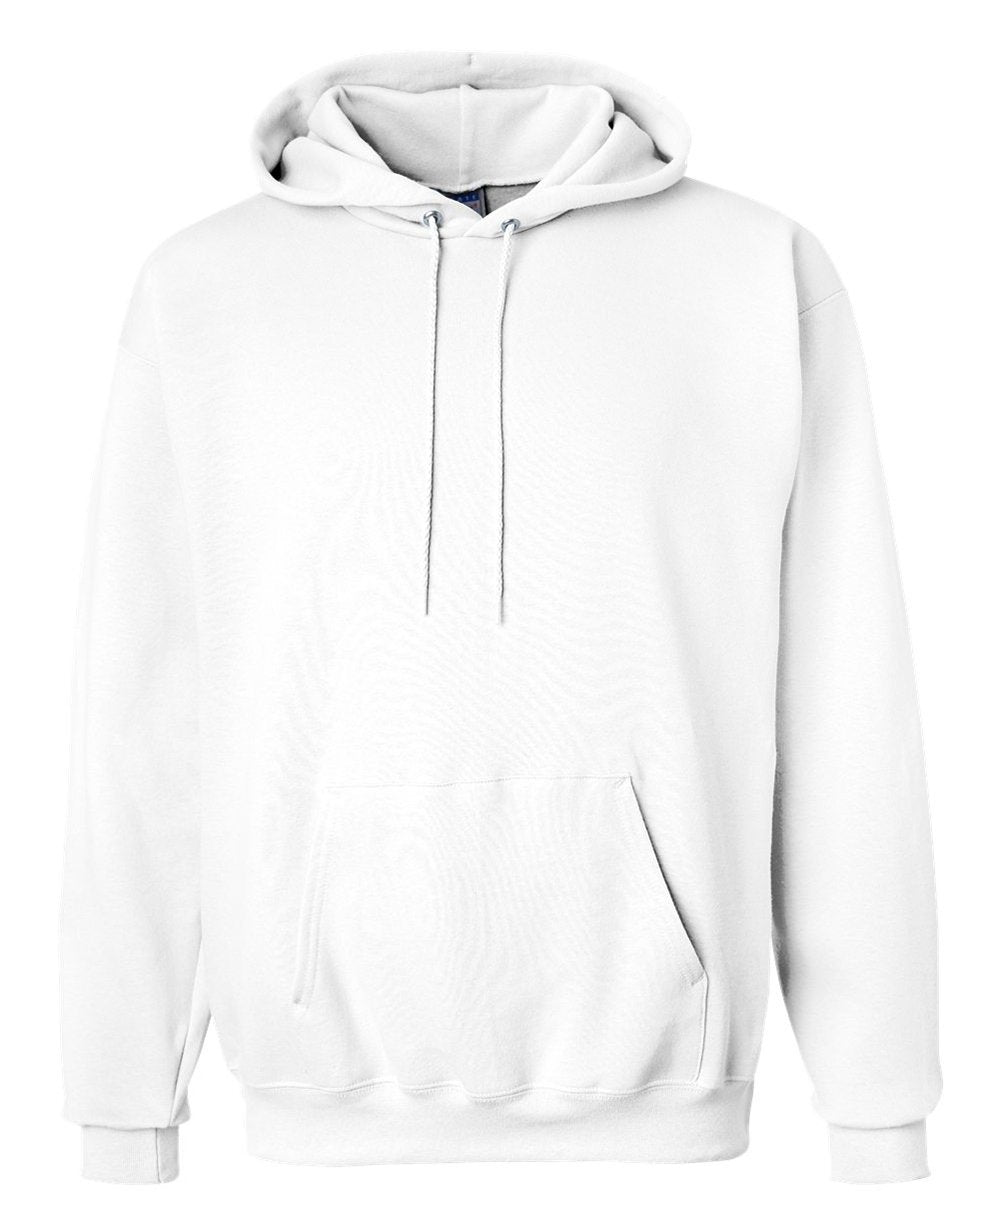 Pullover Hoodies in White